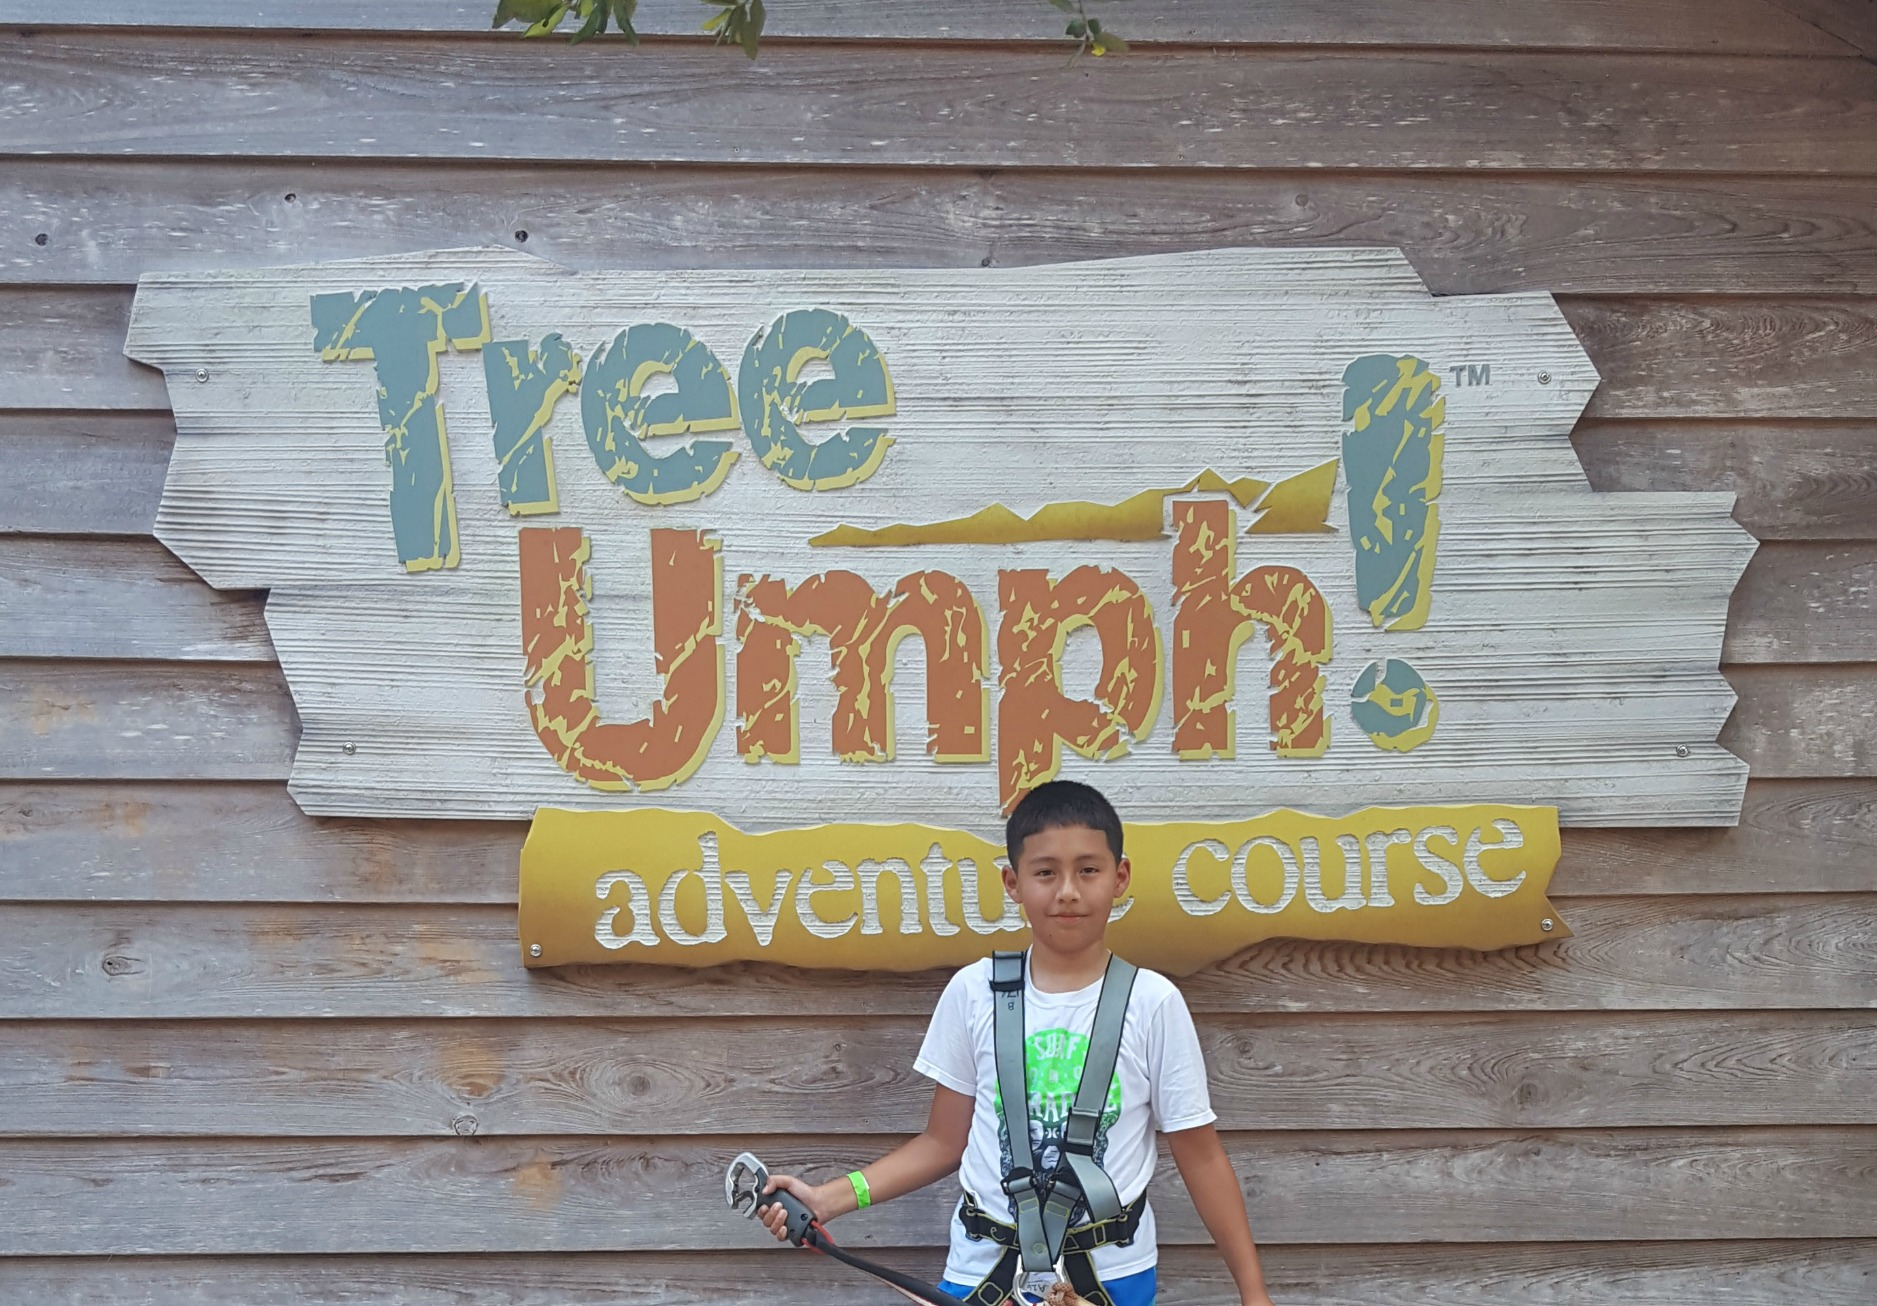 Hanging at TreeUmph Adventure Course in Bradenton, FL